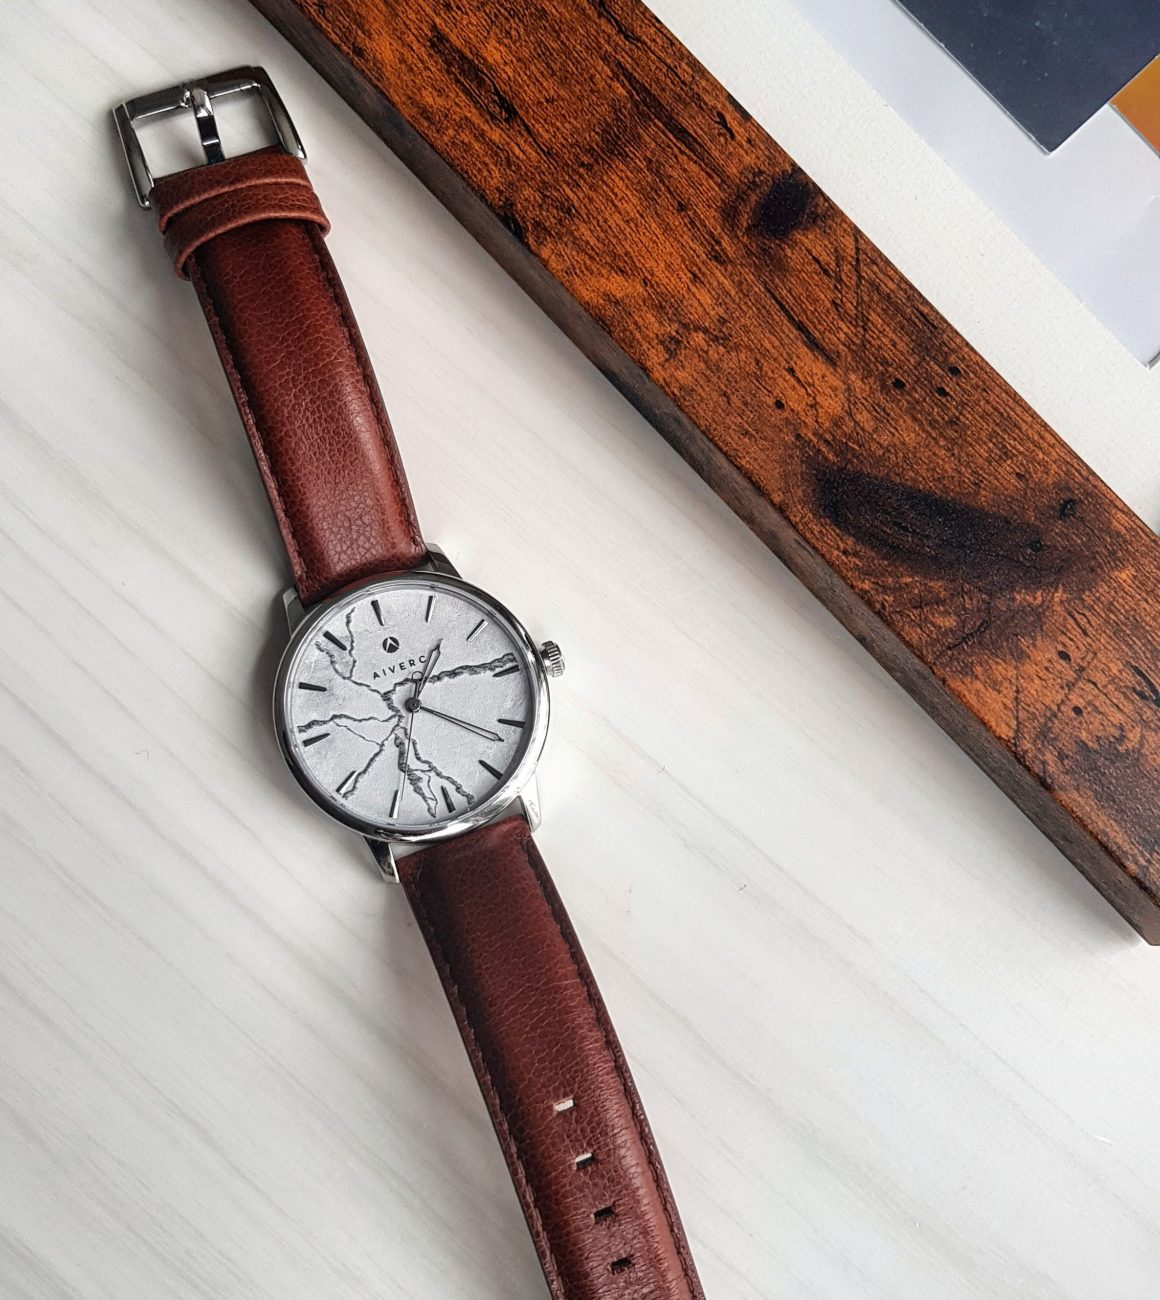 The Aiverc Faena Watch review